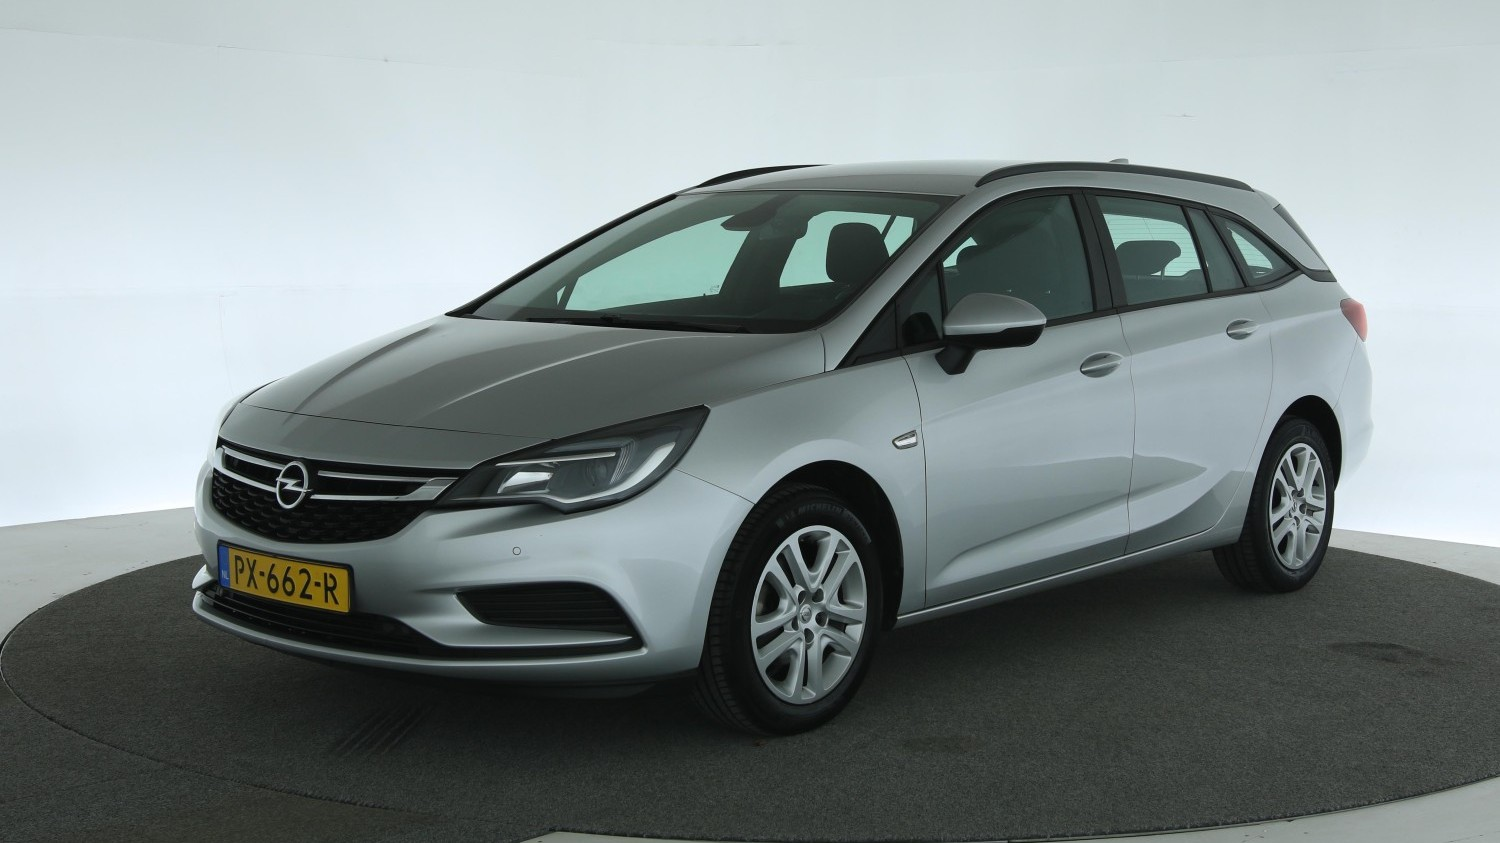 Opel Astra Station 2017 PX-662-R 1